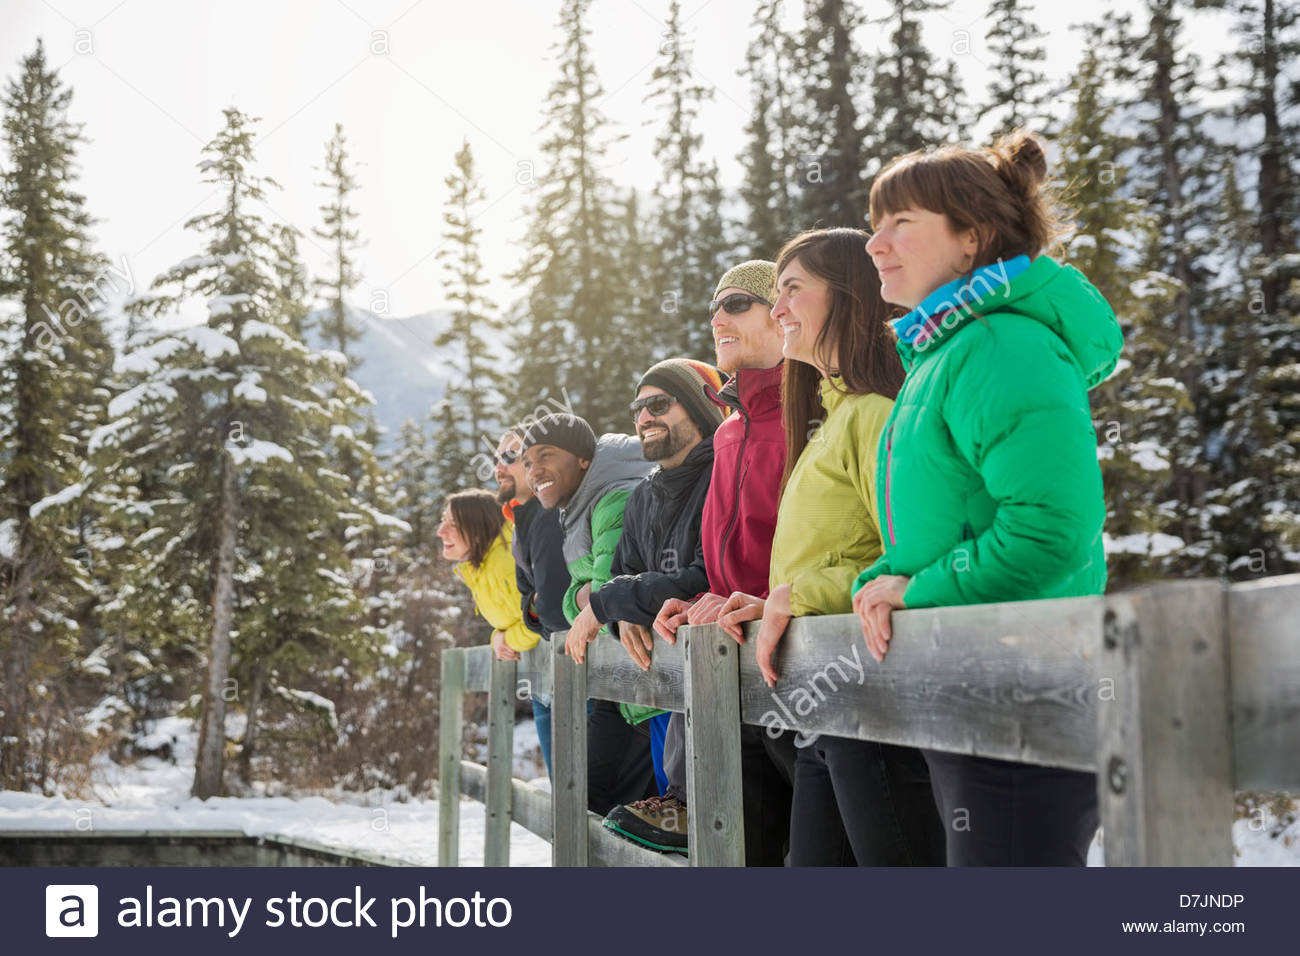 Group of friends standing by fence in mountains - Stock Image